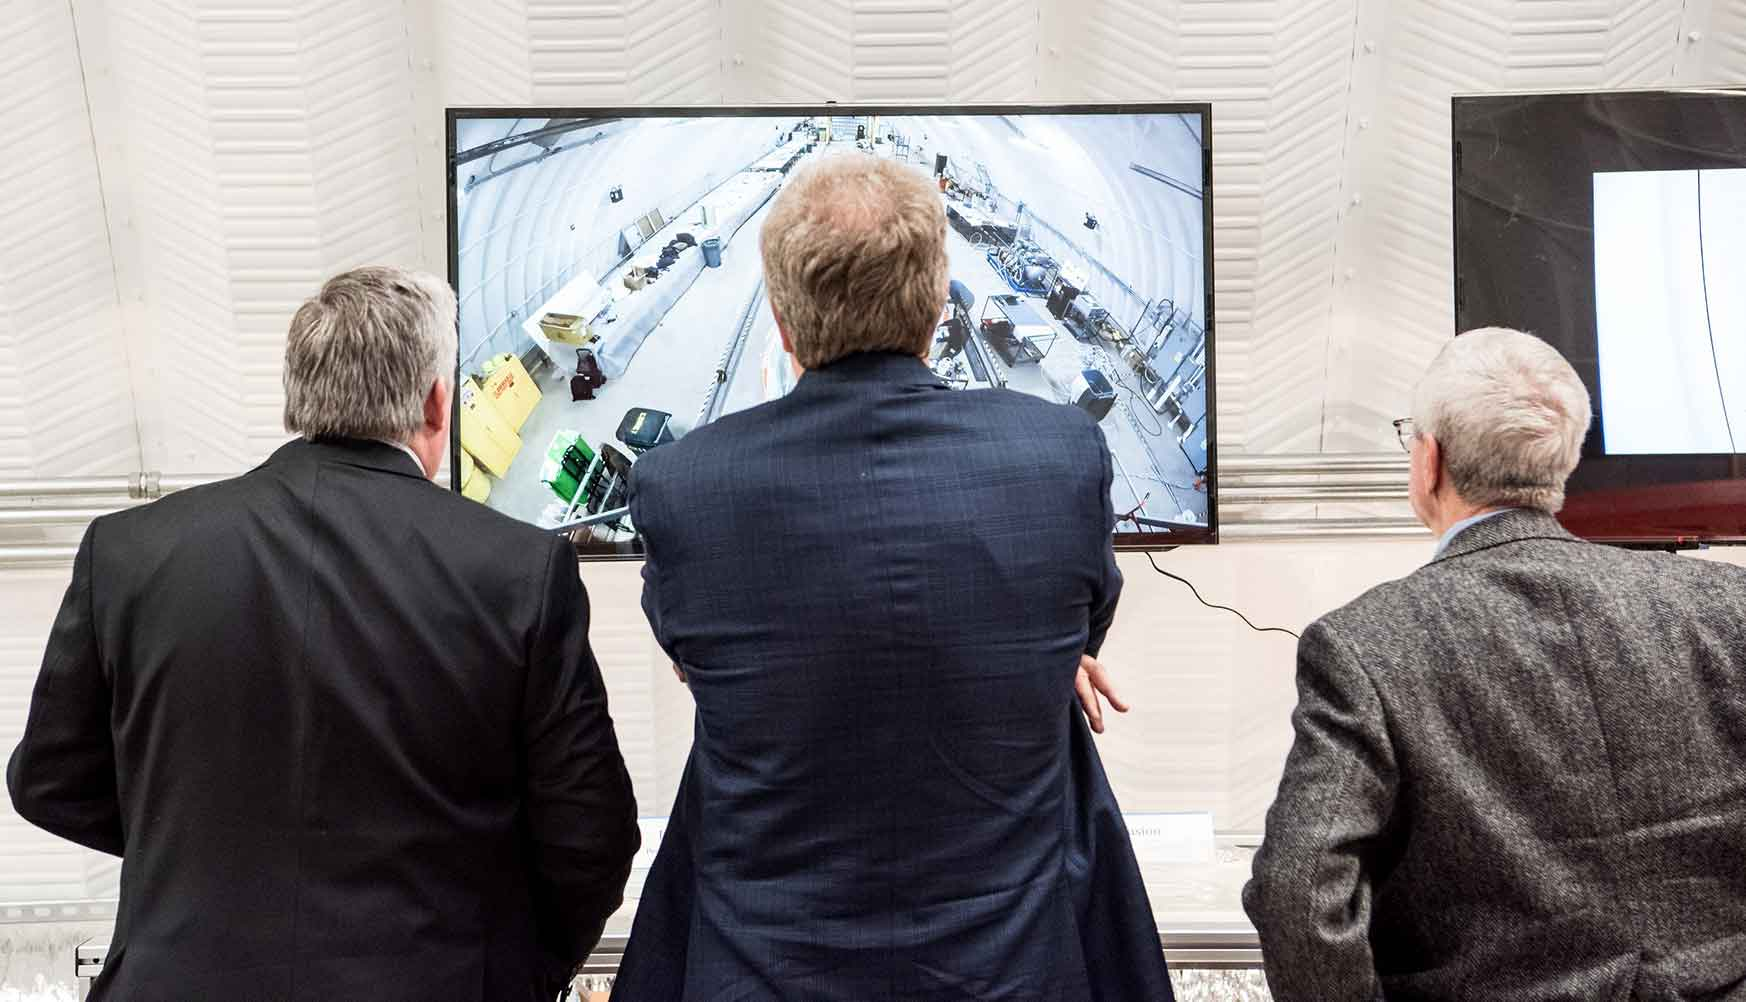 A photo of three men watching a television screen showing a time lapse video of the construction of a wind turbine blade.